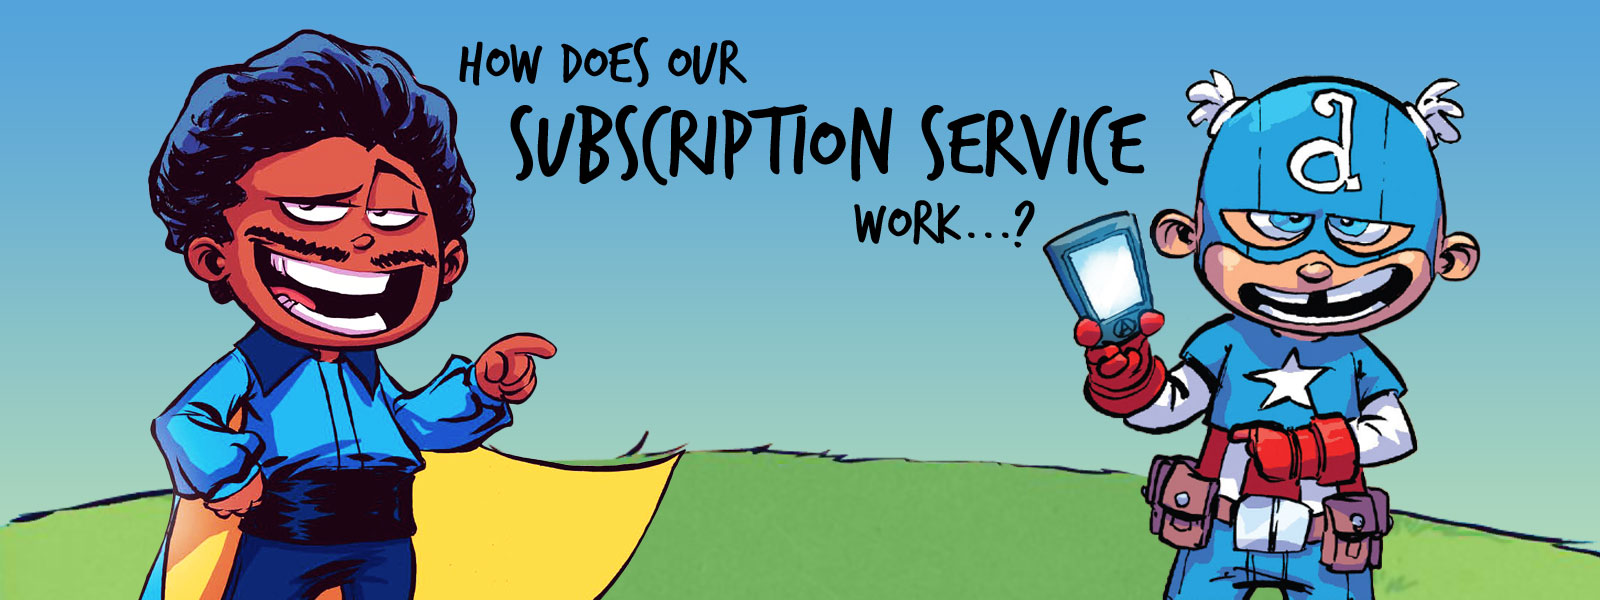 How our Subscription Service works